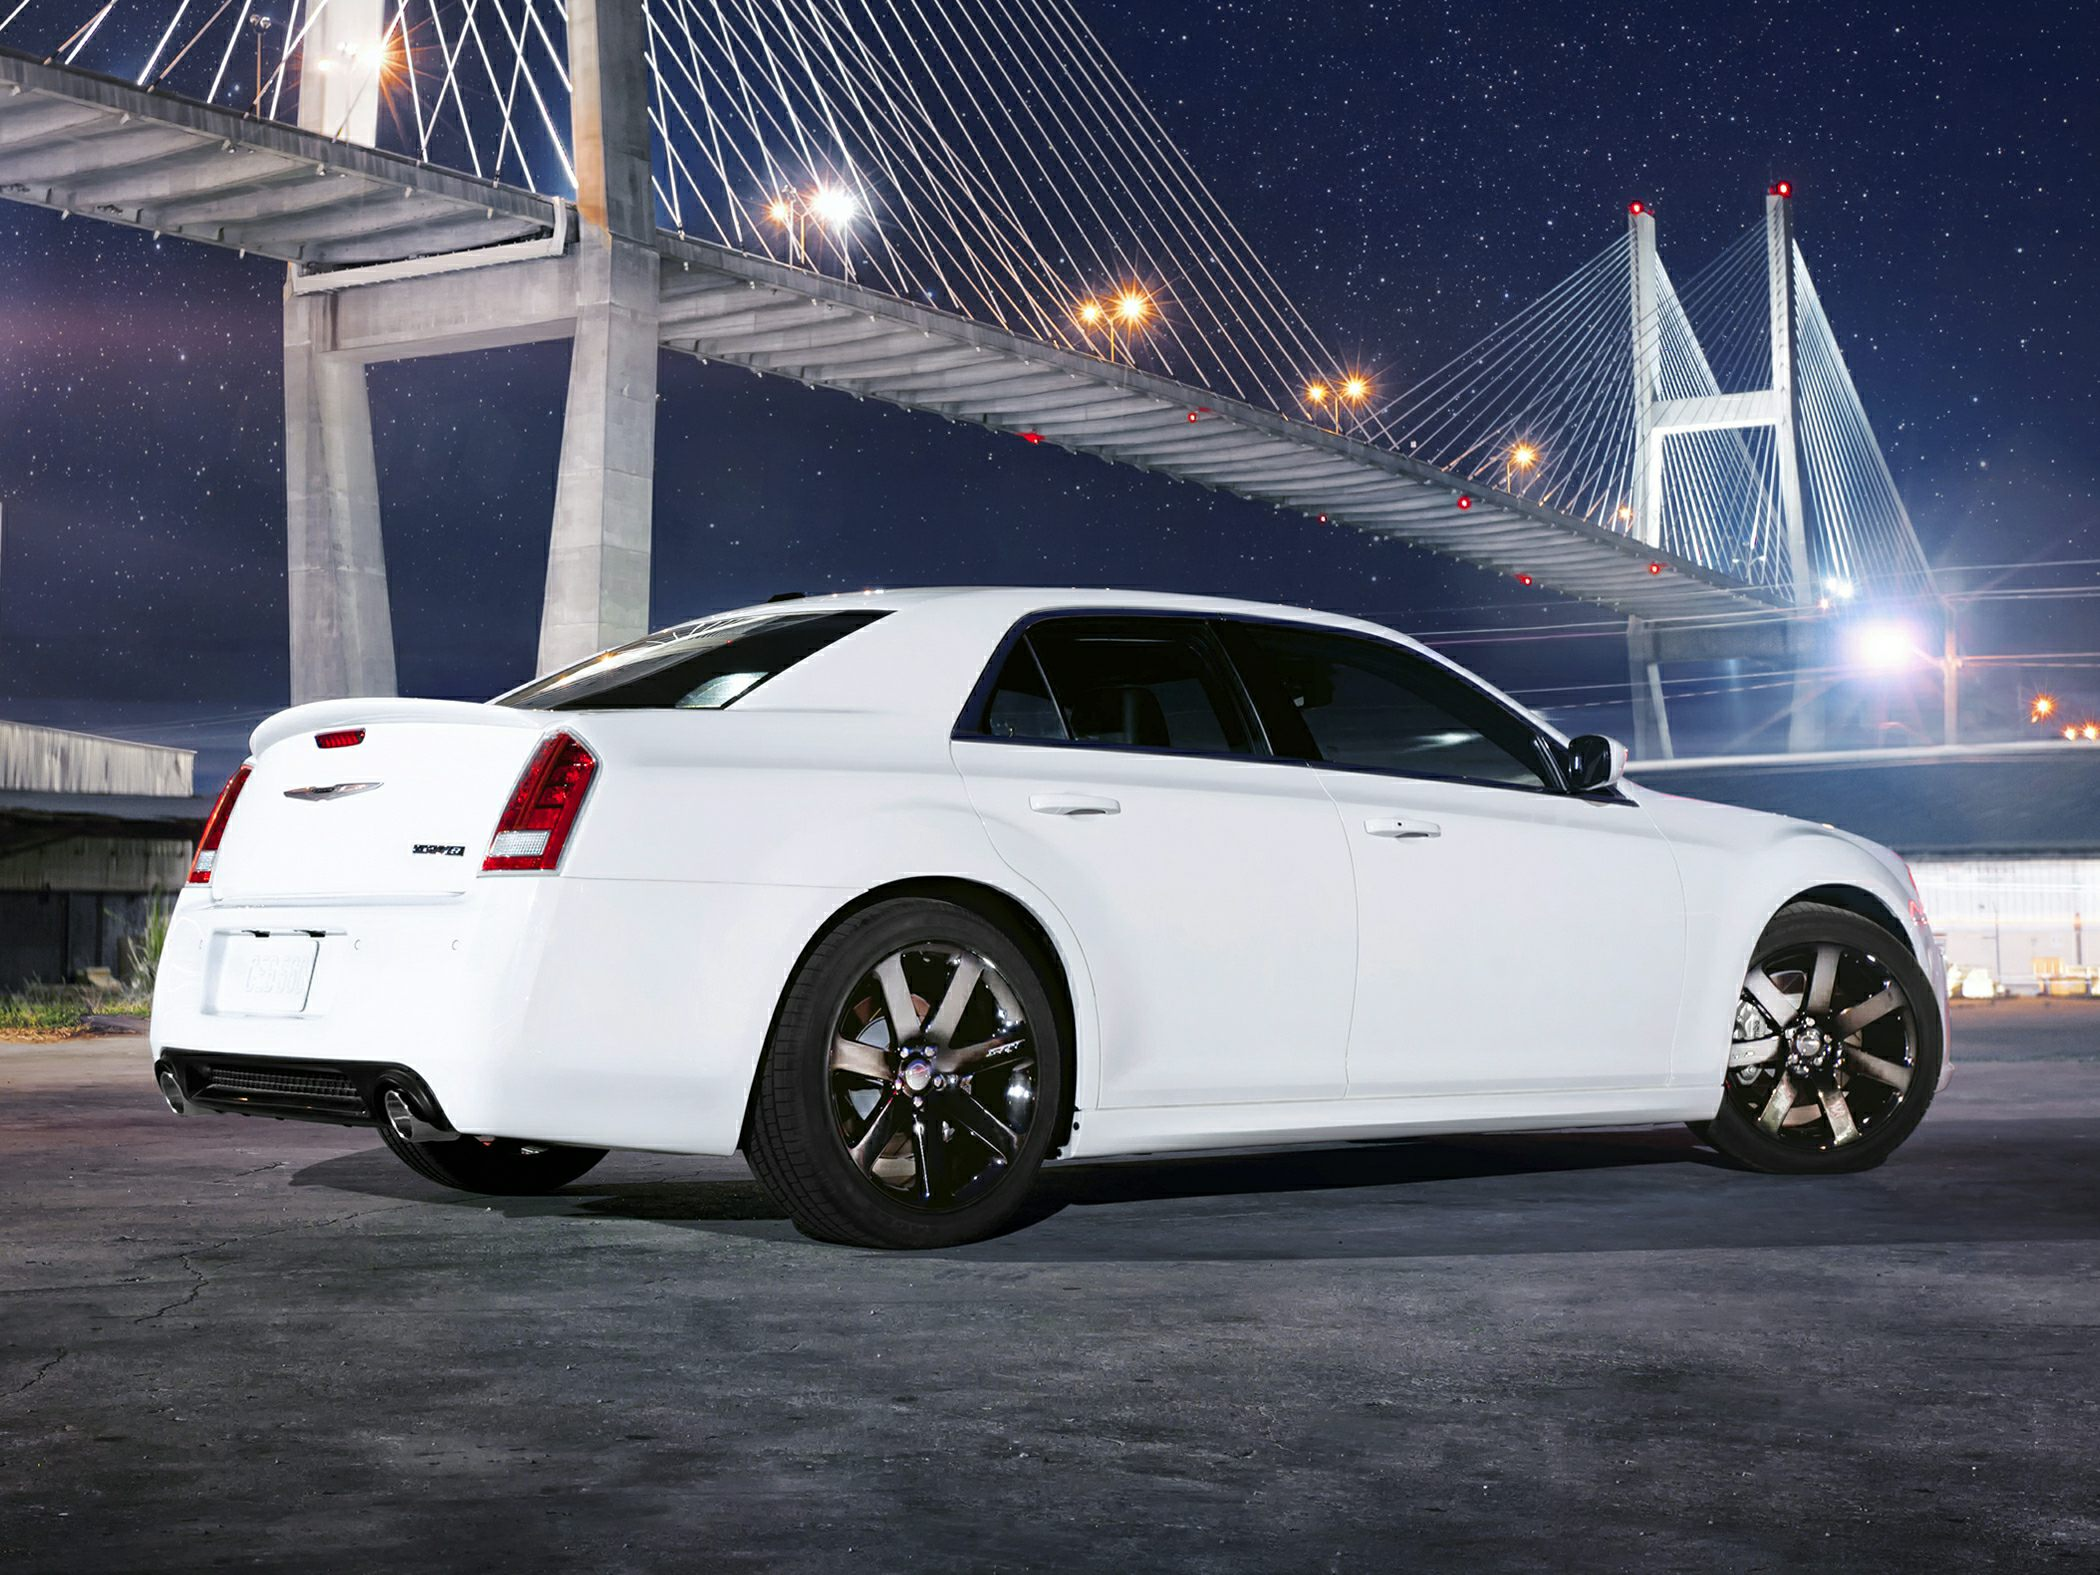 2014 Chrysler 300 Glam2